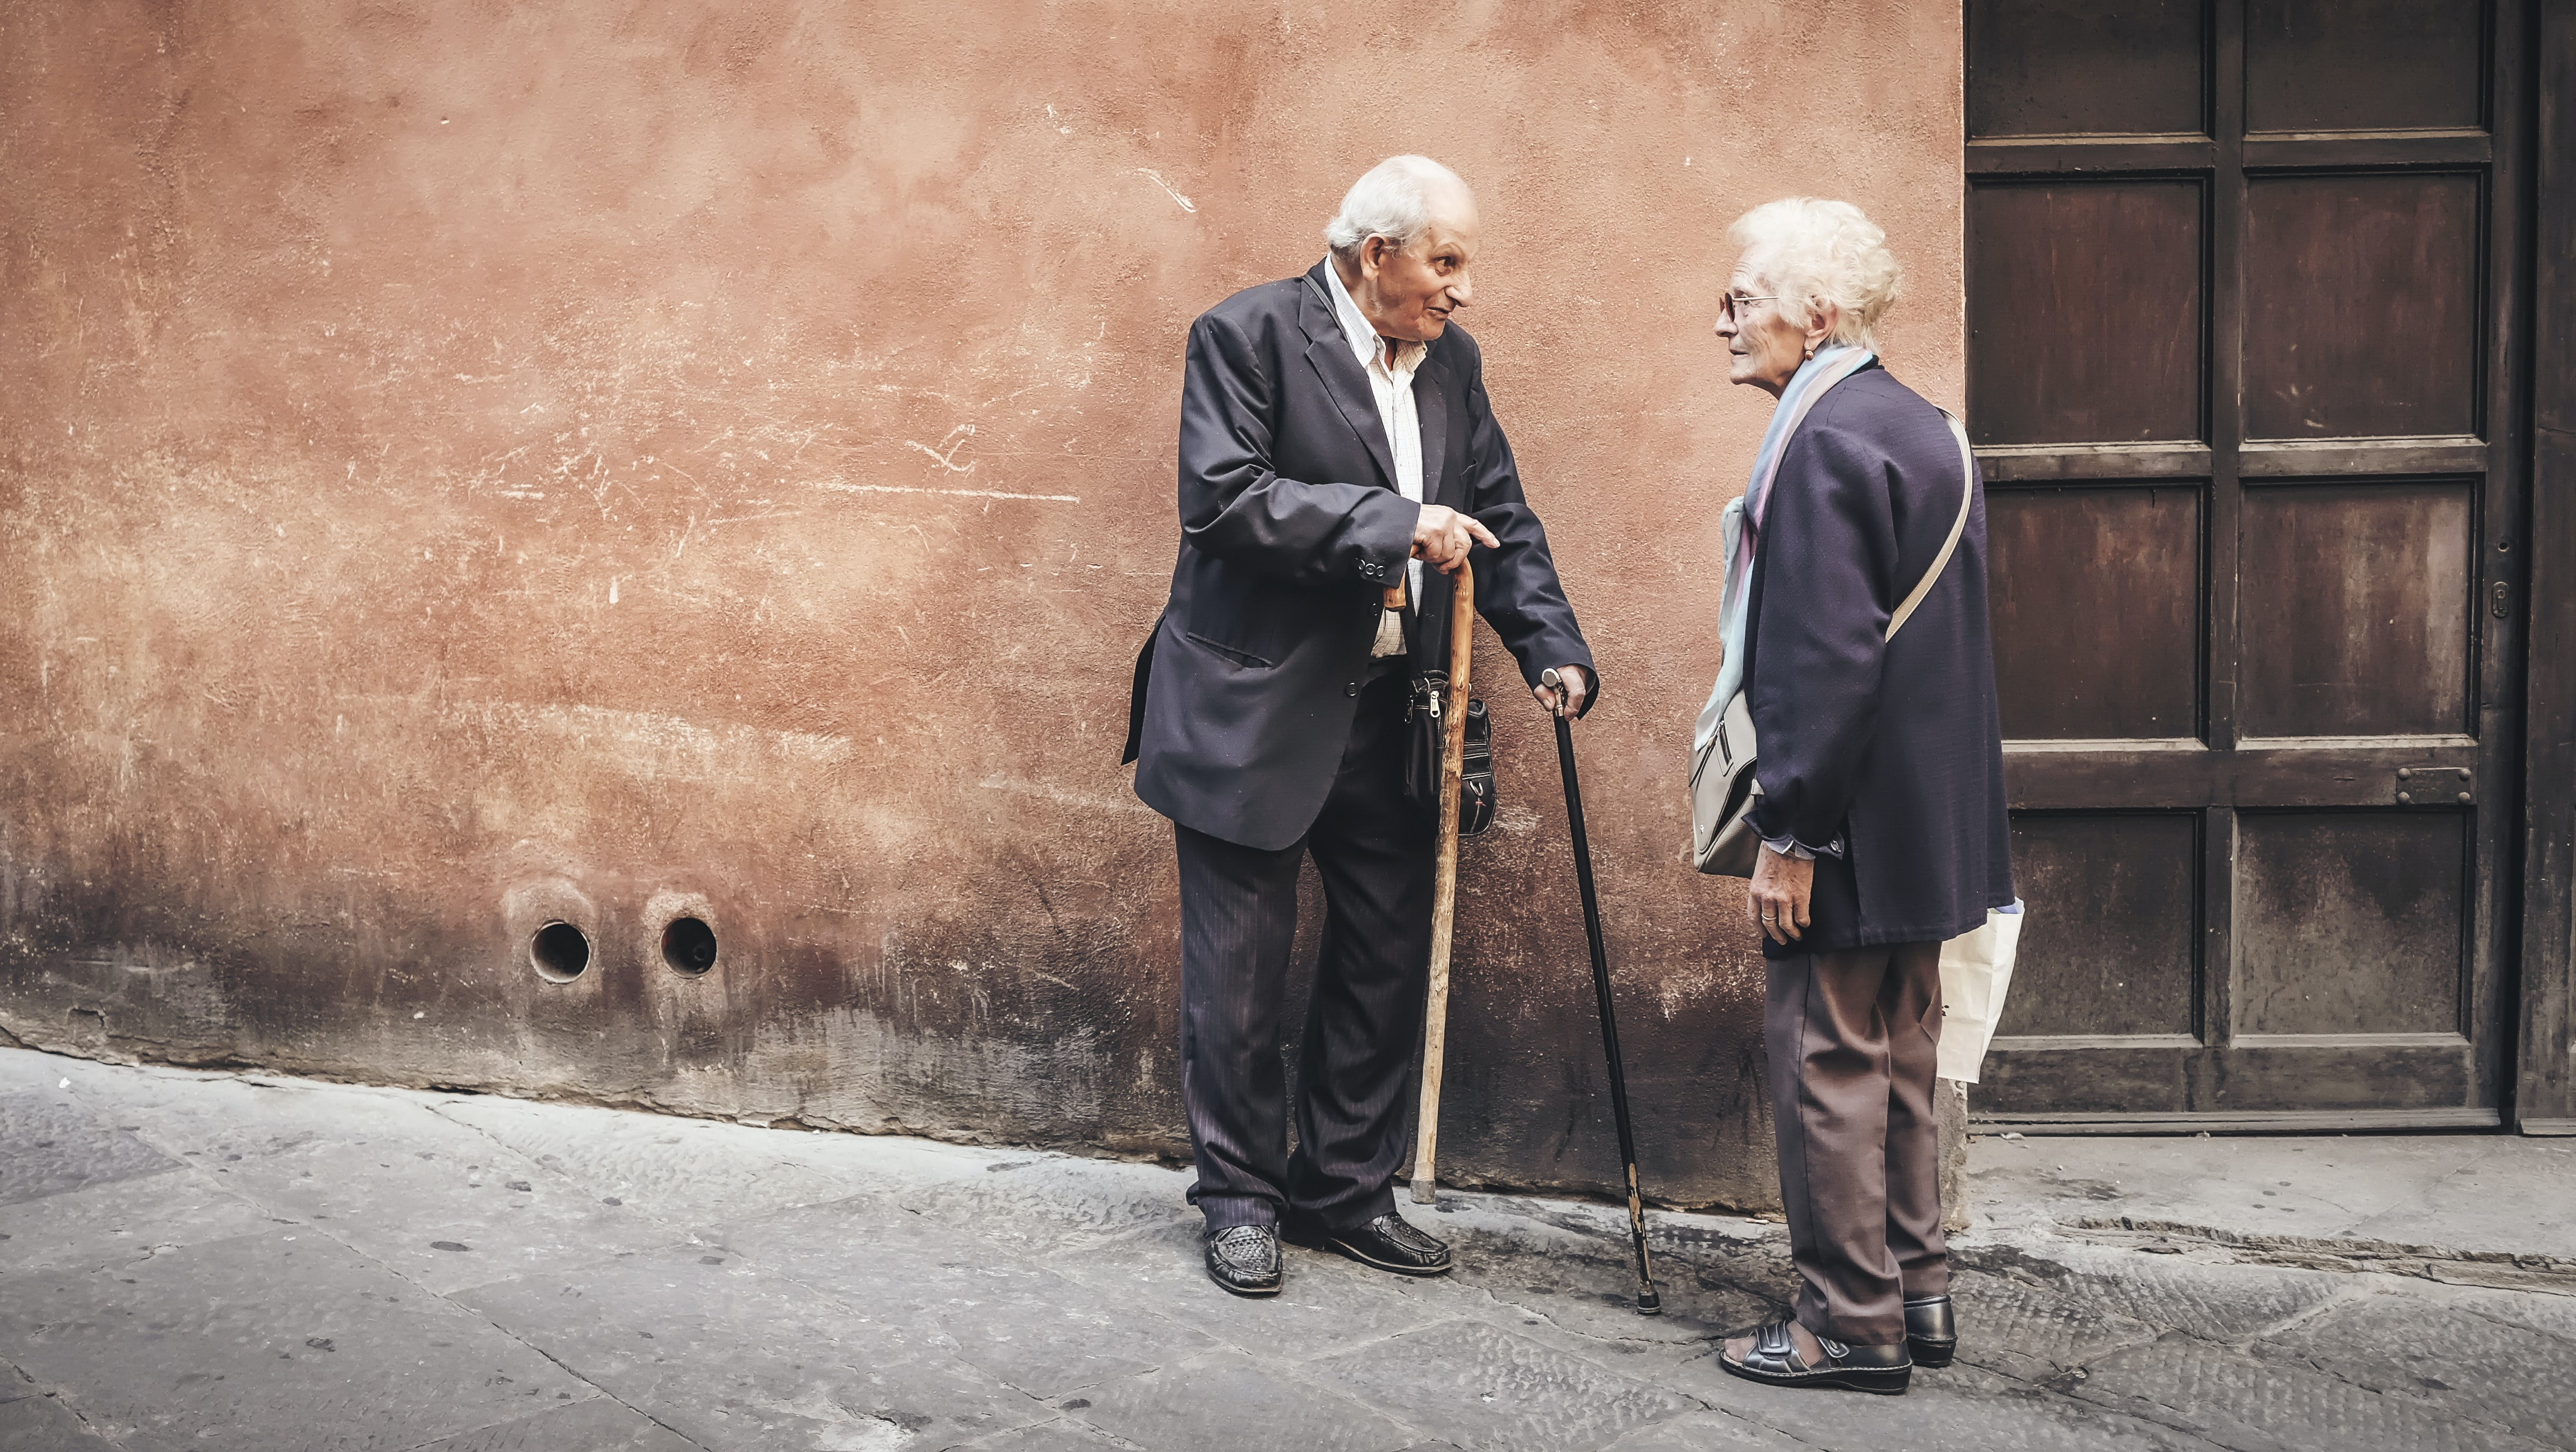 An old man and woman having a conversation with their canes next to a doorway.